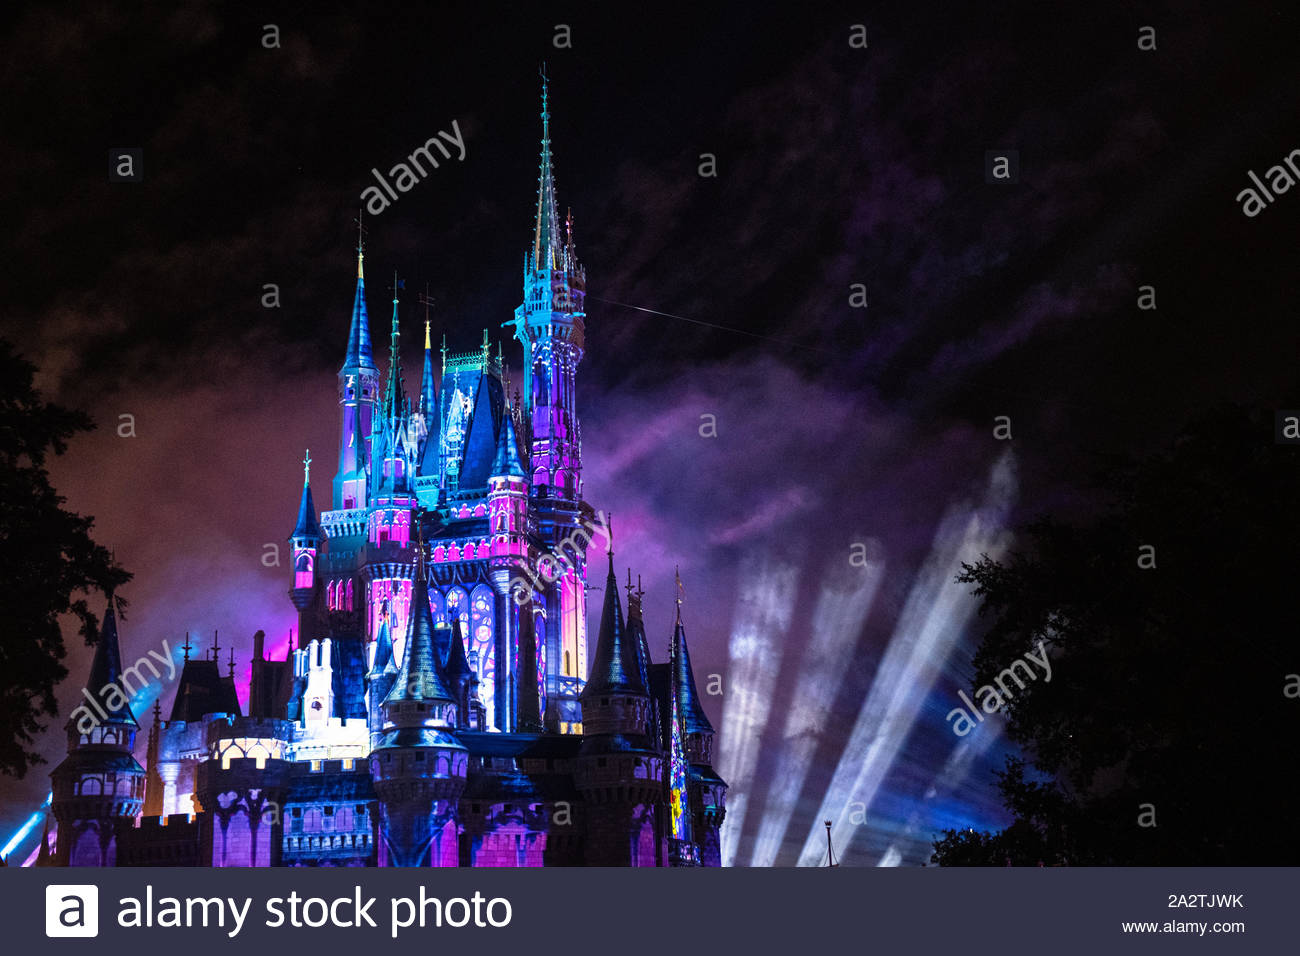 Orlando, Florida-July 20, 2019: Visiting the Walt Disney Magic Kingdom Park. The place is a famous tourist attraction. Stock Photo